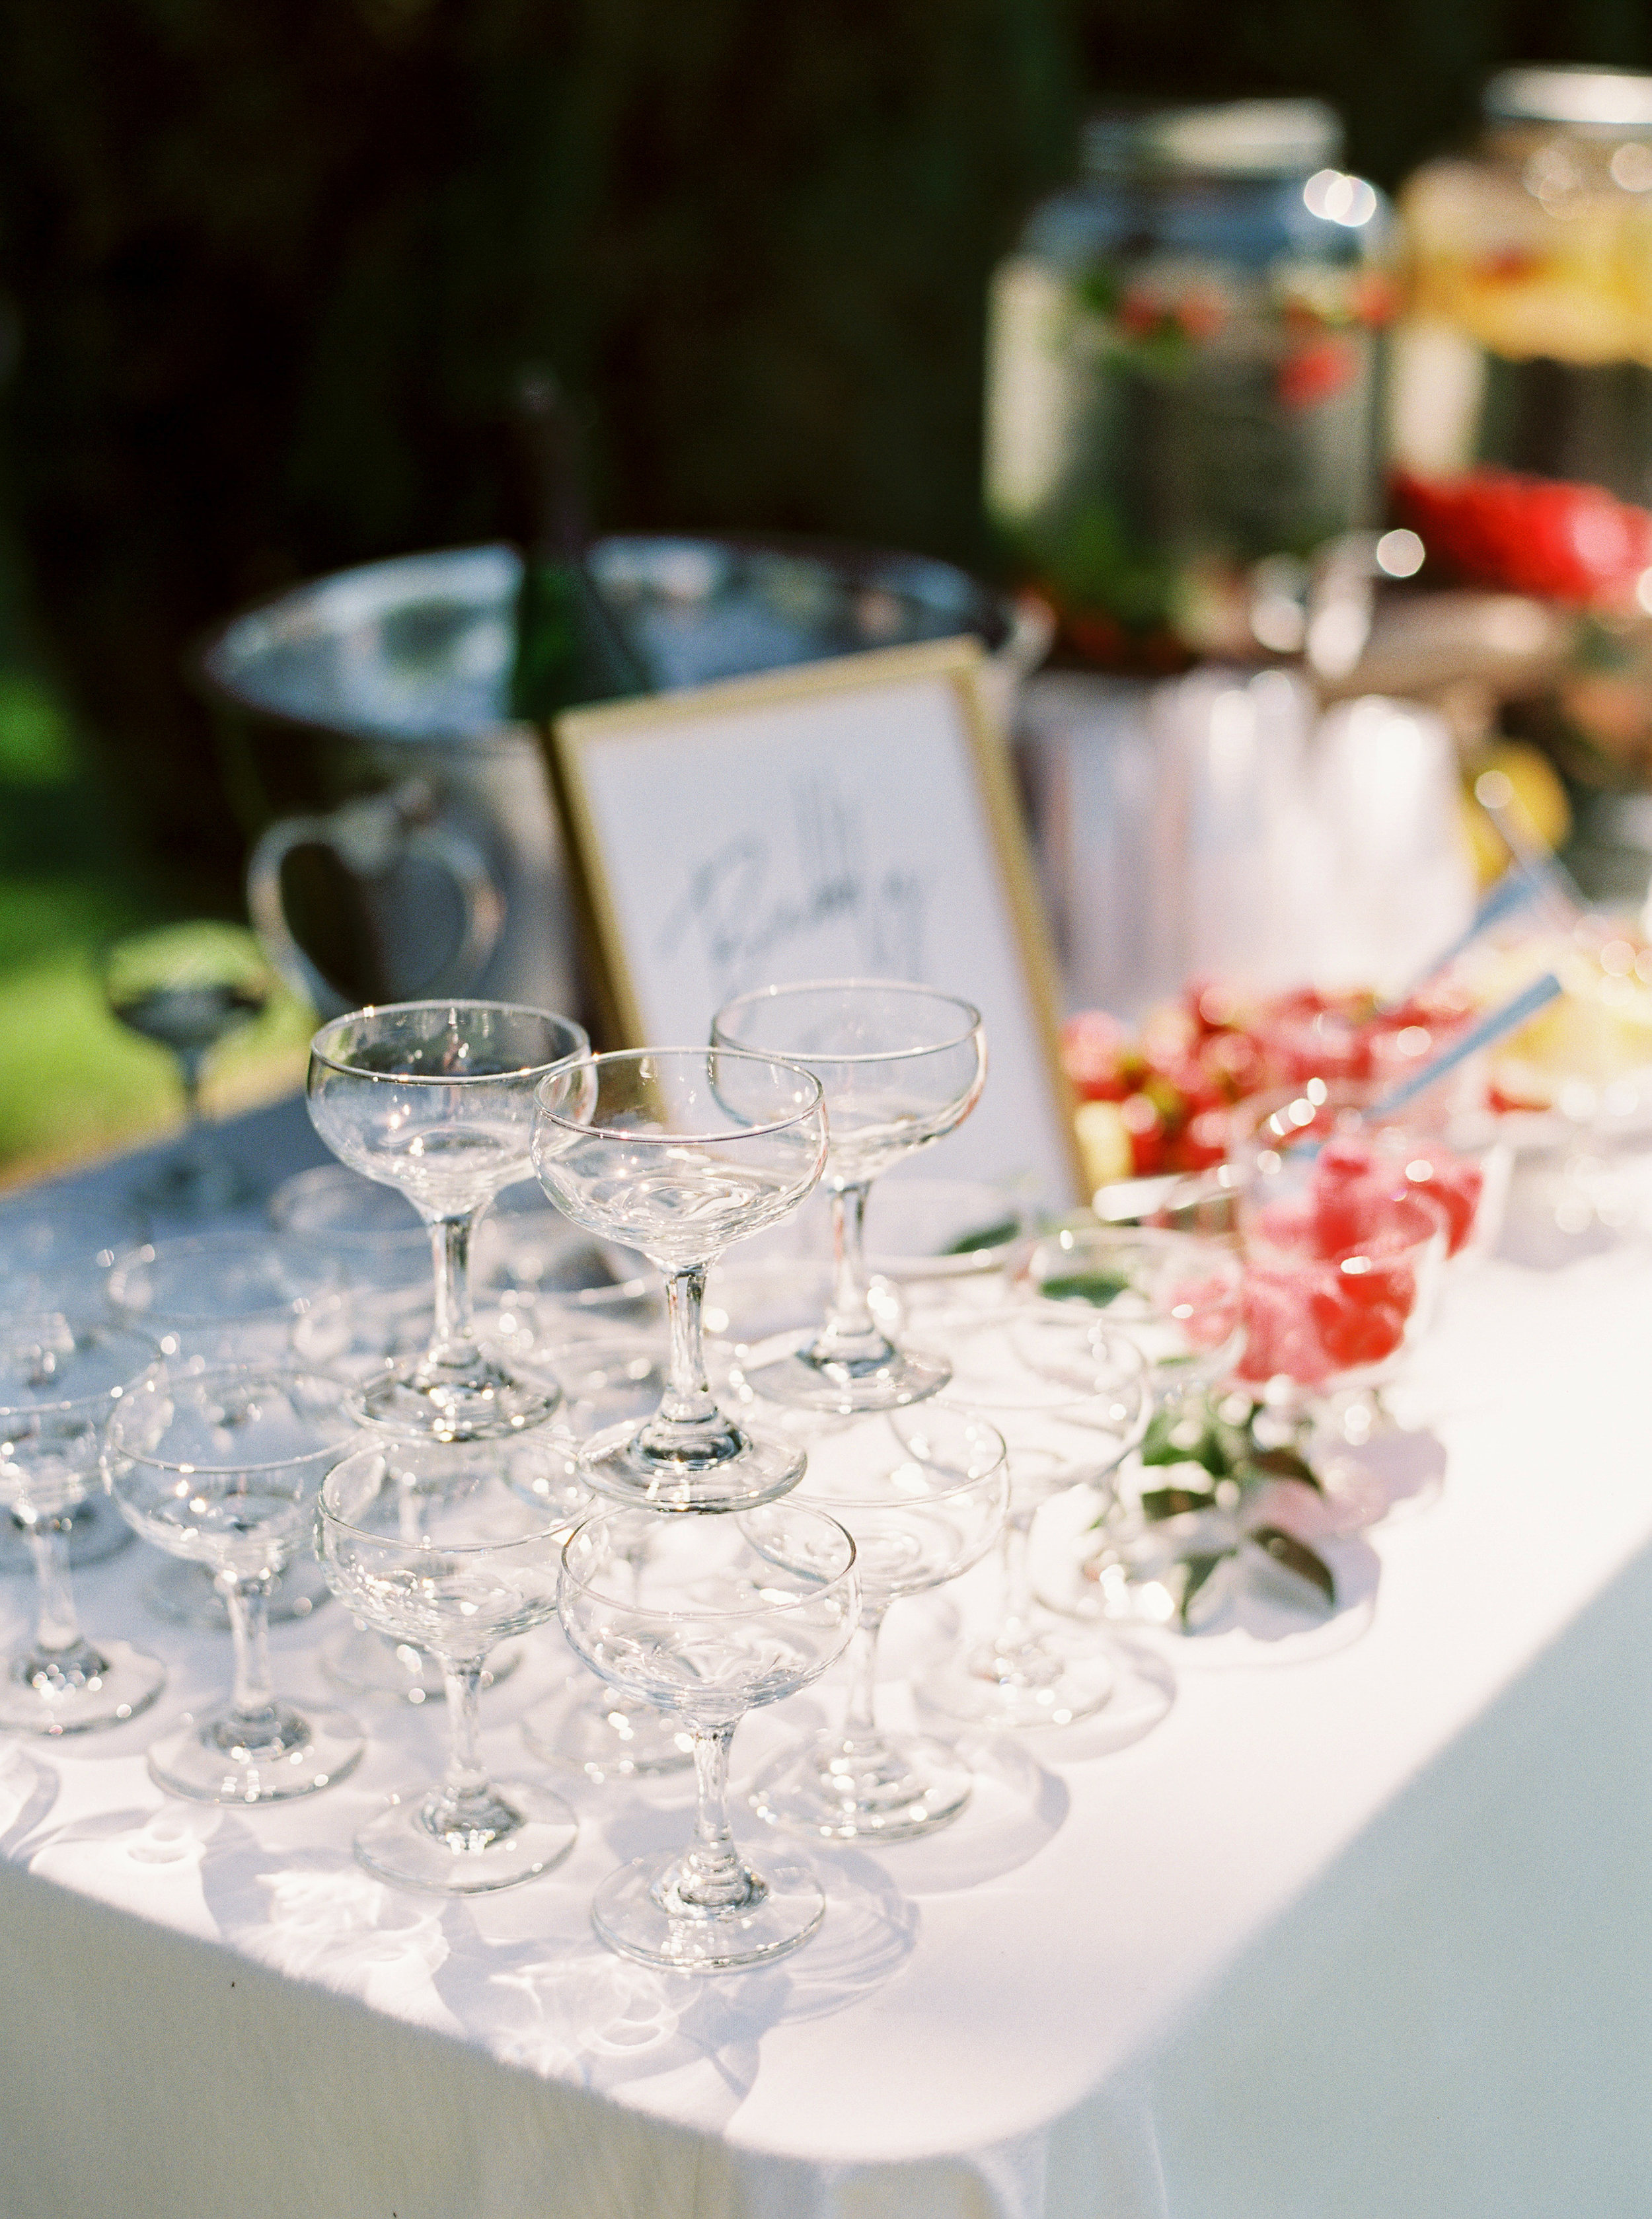 Durst-winery-wedding-in-lodi-calfornia-167.jpg